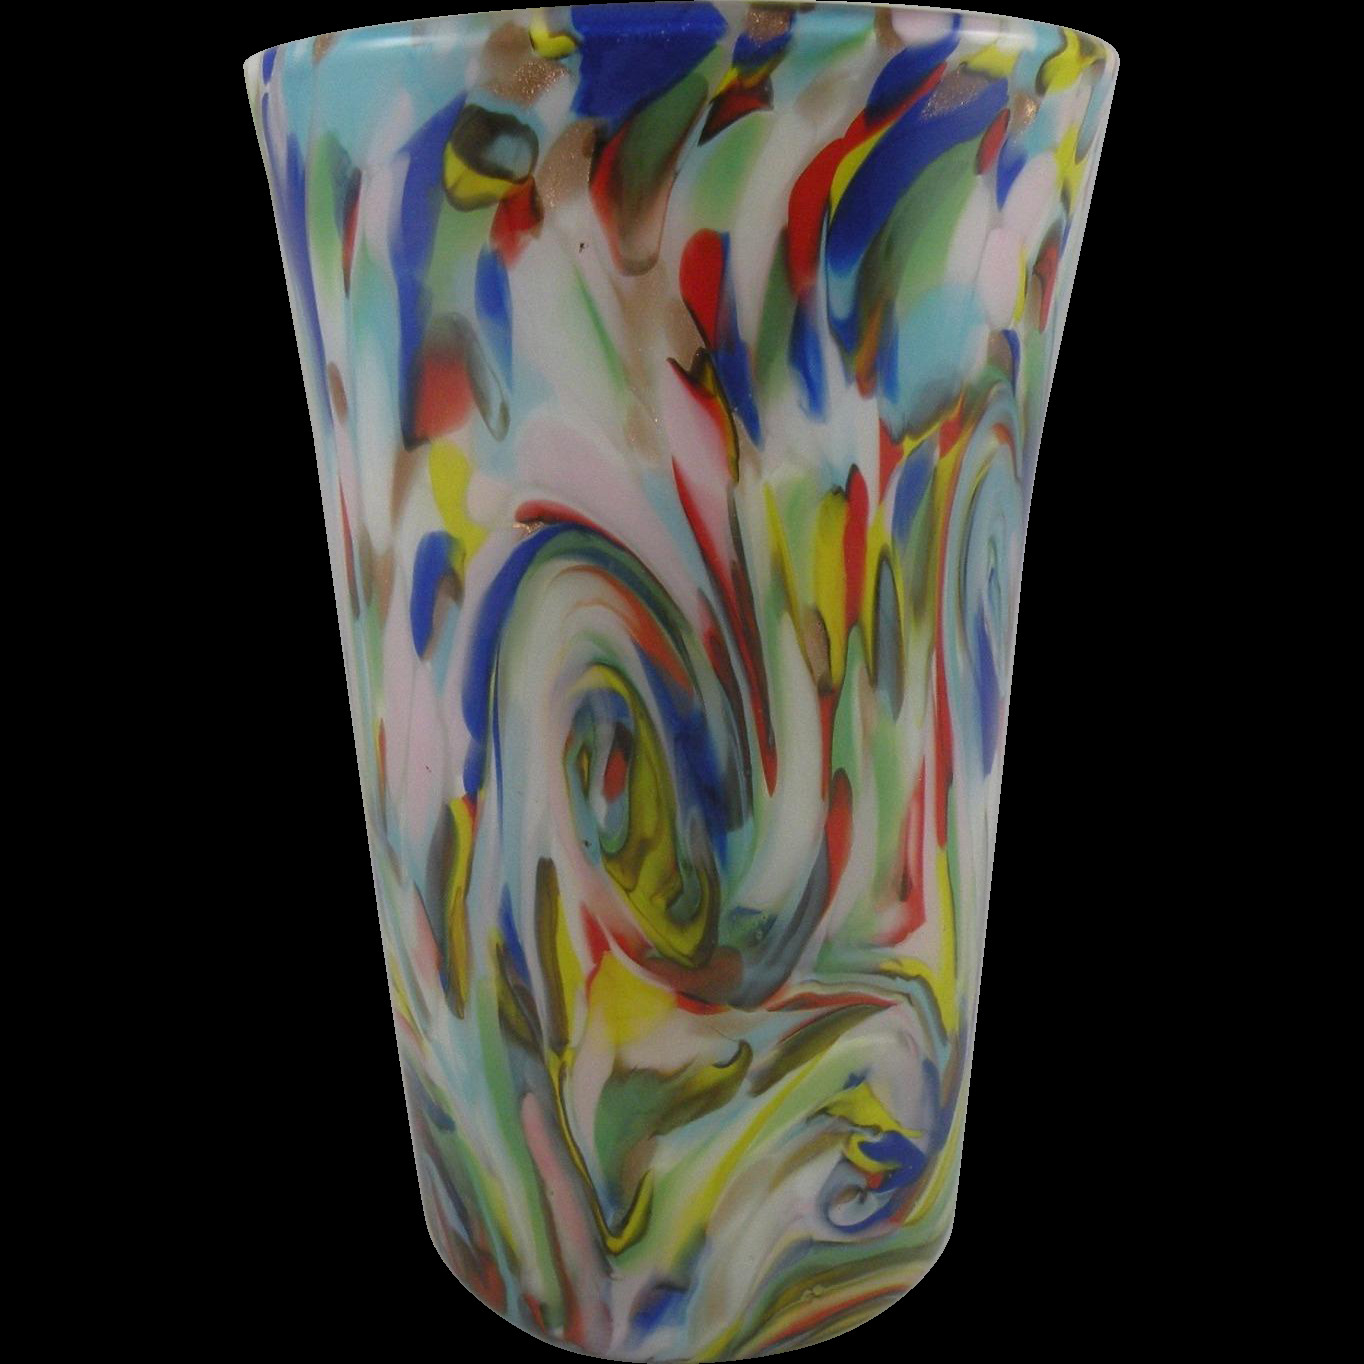 tiffany vines vase of fratelli toso colorful apparenza vase made in murano from san marcos intended for fratelli toso colorful apparenza vase made in murano